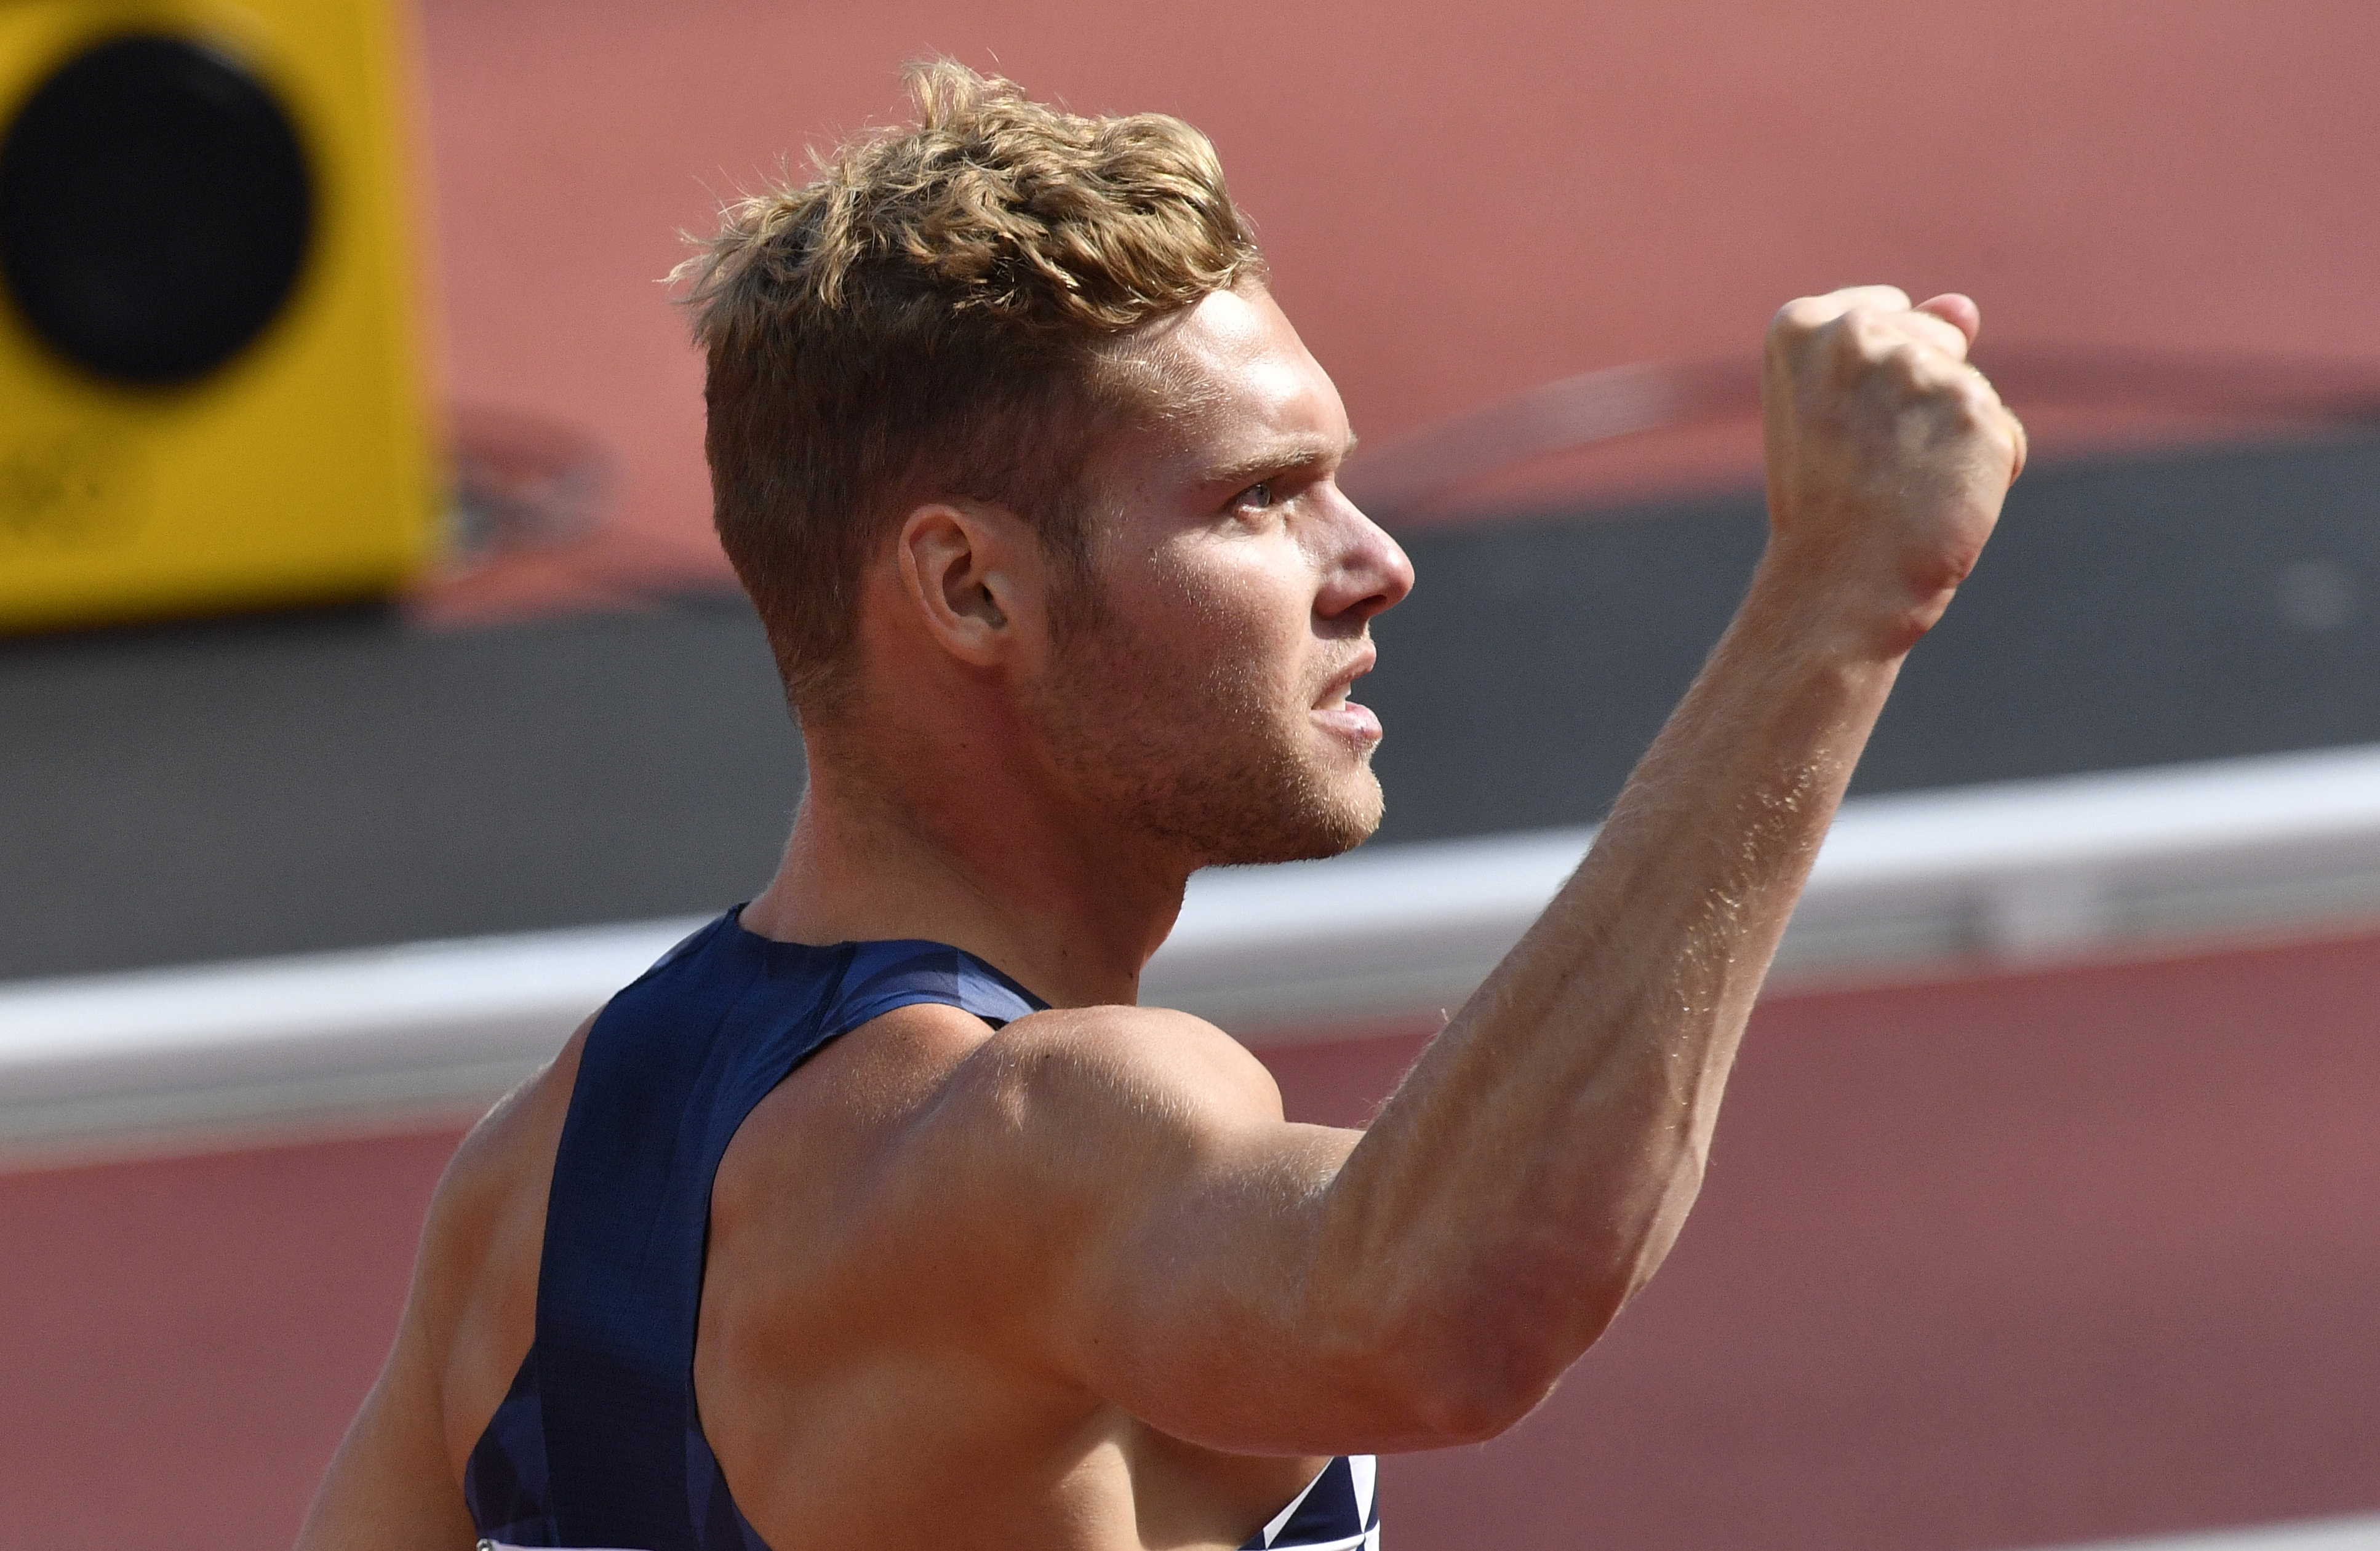 France's Kevin Mayer celebrates after setting a new personal best in the 100m event of the decathlon during the World Athletics Championships in London Friday, Aug. 11, 2017. (AP Photo/Martin Meissner)